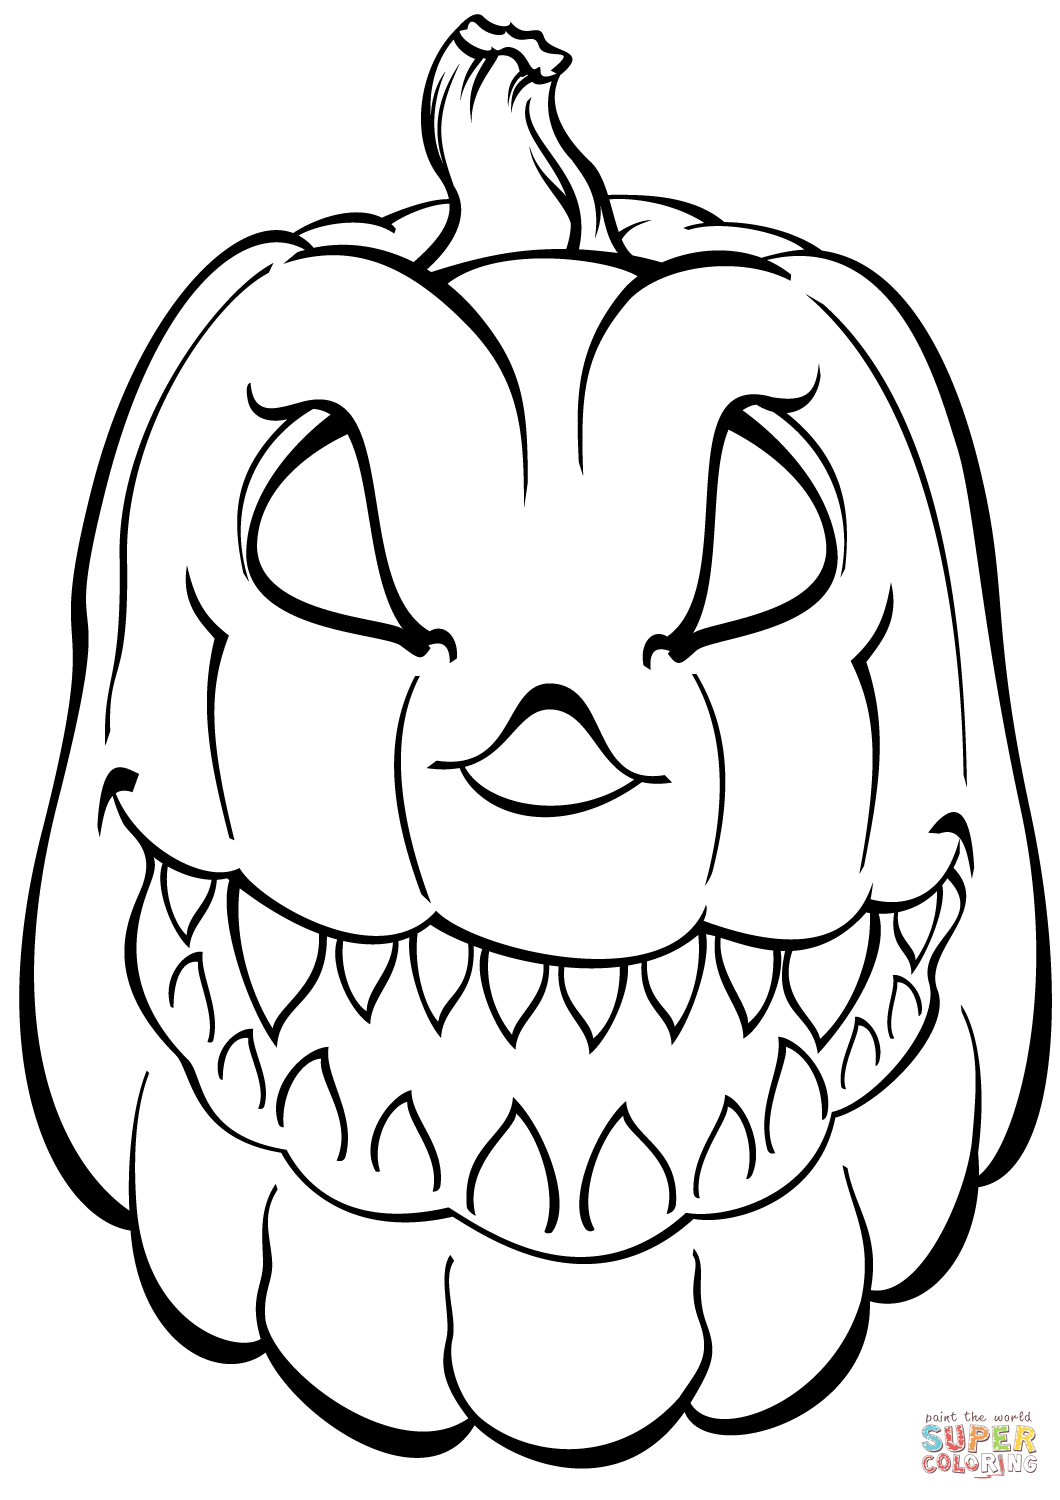 coloring pages pumpkins print scary pumpkin coloring page free printable coloring pages pumpkins pages print coloring